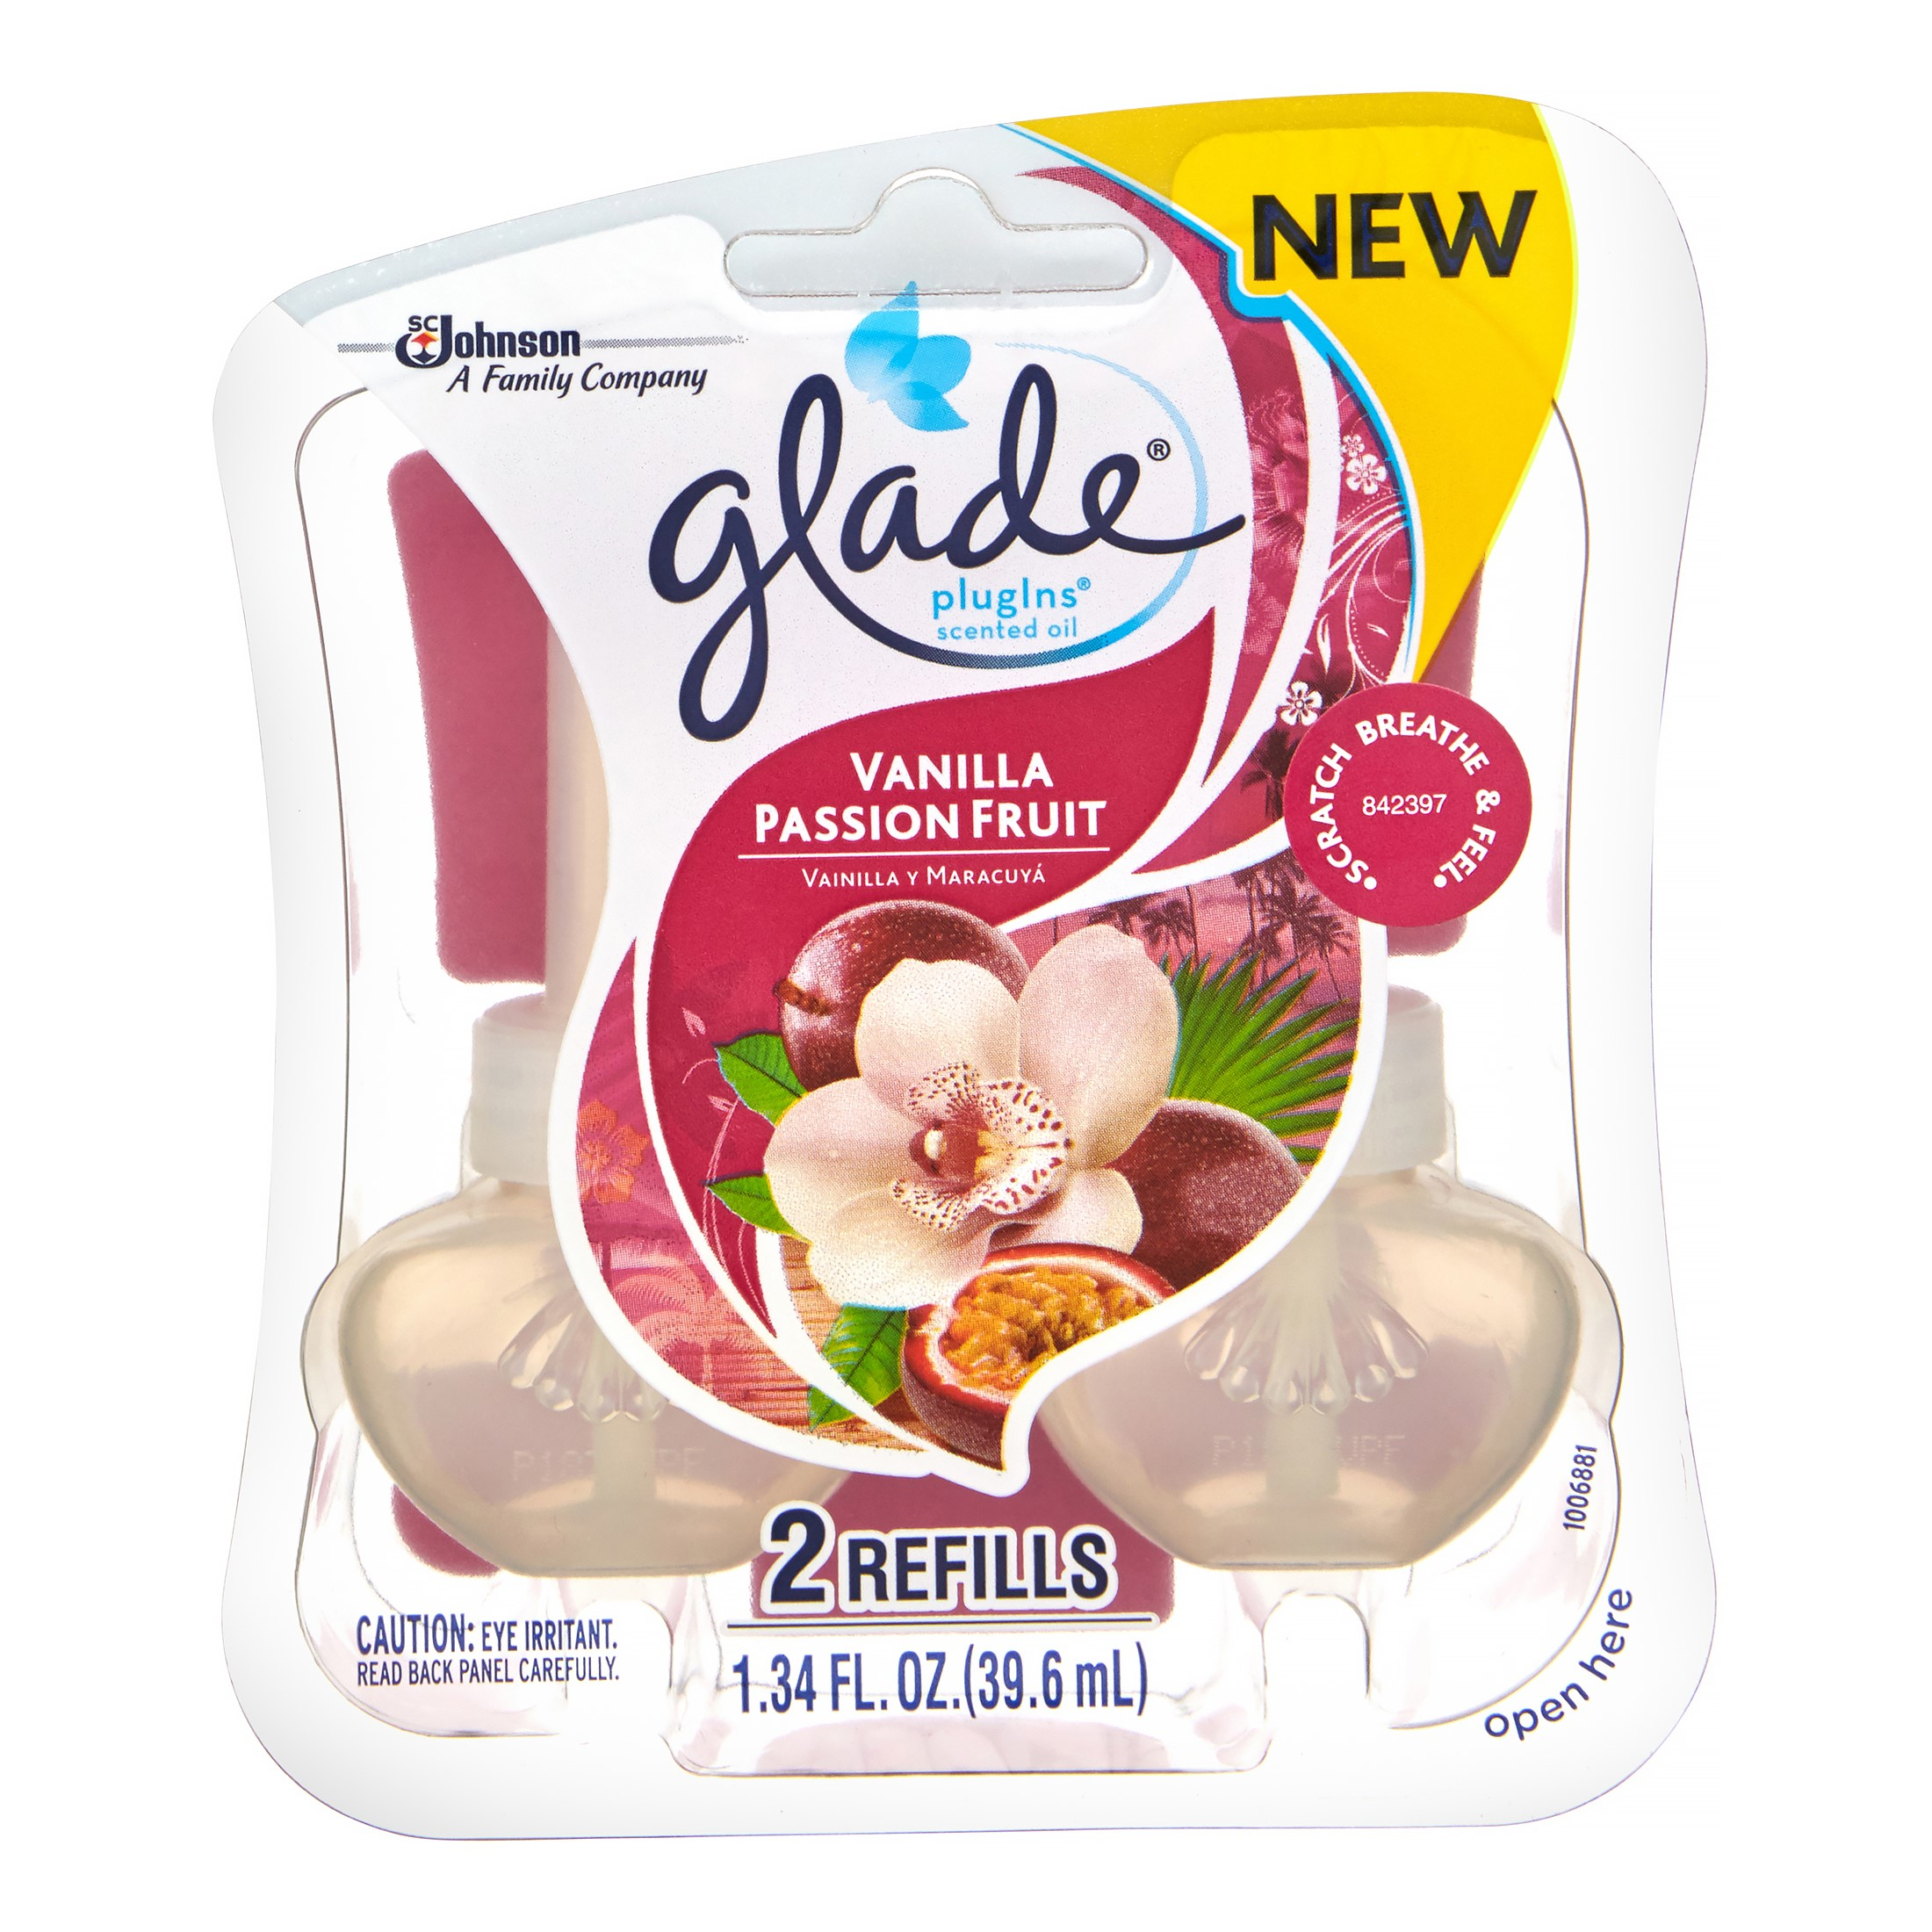 Glade Plug In Refill, Vanilla Passion Fruit, 1.34 Fl. Oz. (Pack of 2)